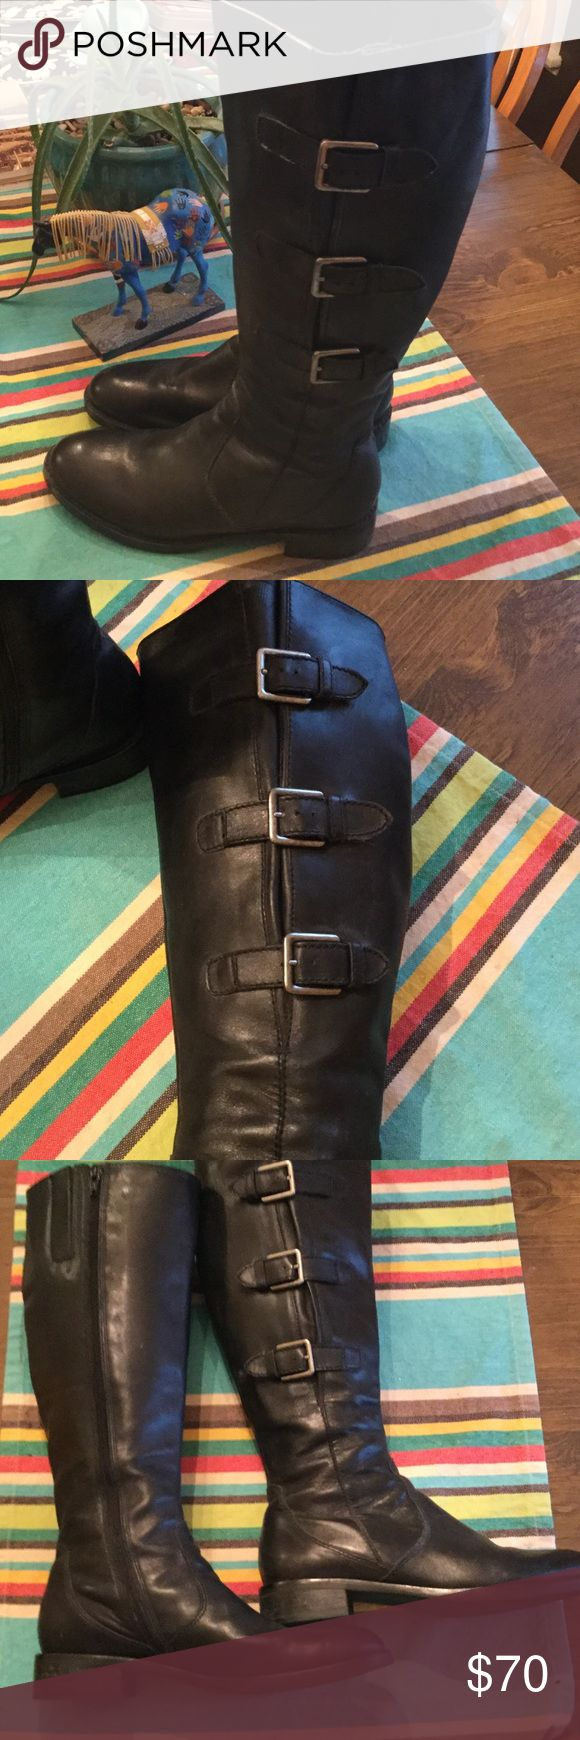 Ecco tall boots wide calf leather Ecco leather boots made with insert and elastic to expand for wide calf. Nice lightly used condition Ecco Shoes